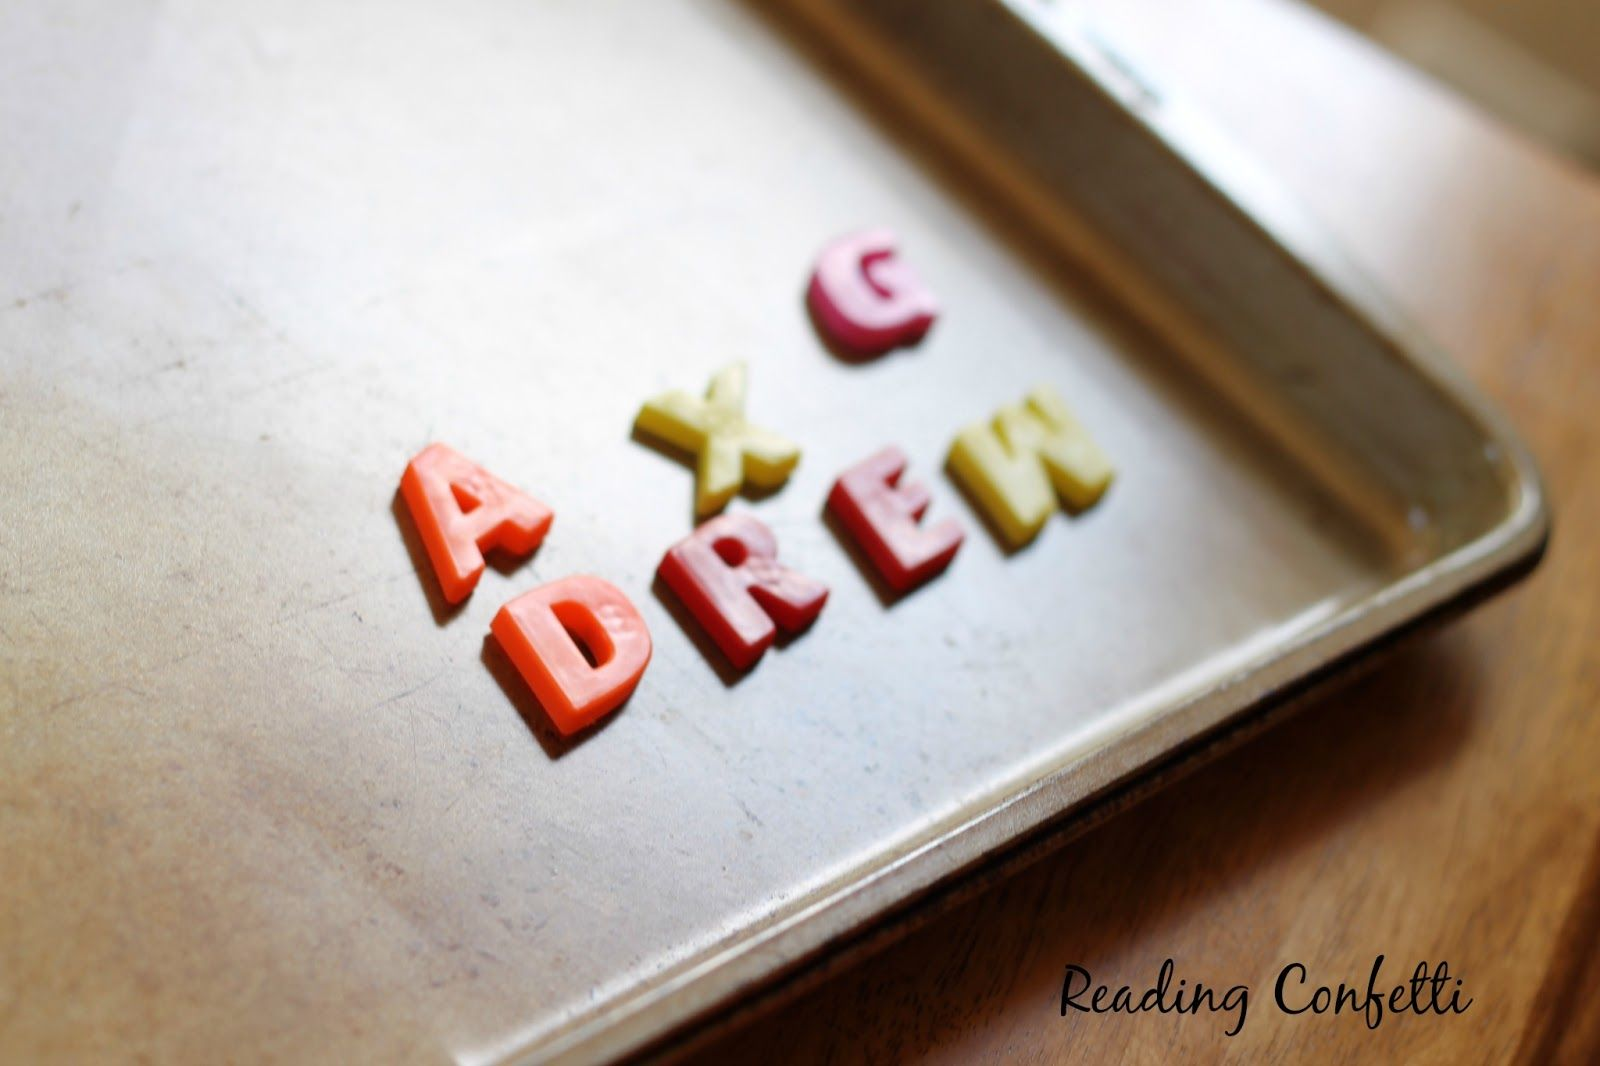 Making Words With Magnetic Letters